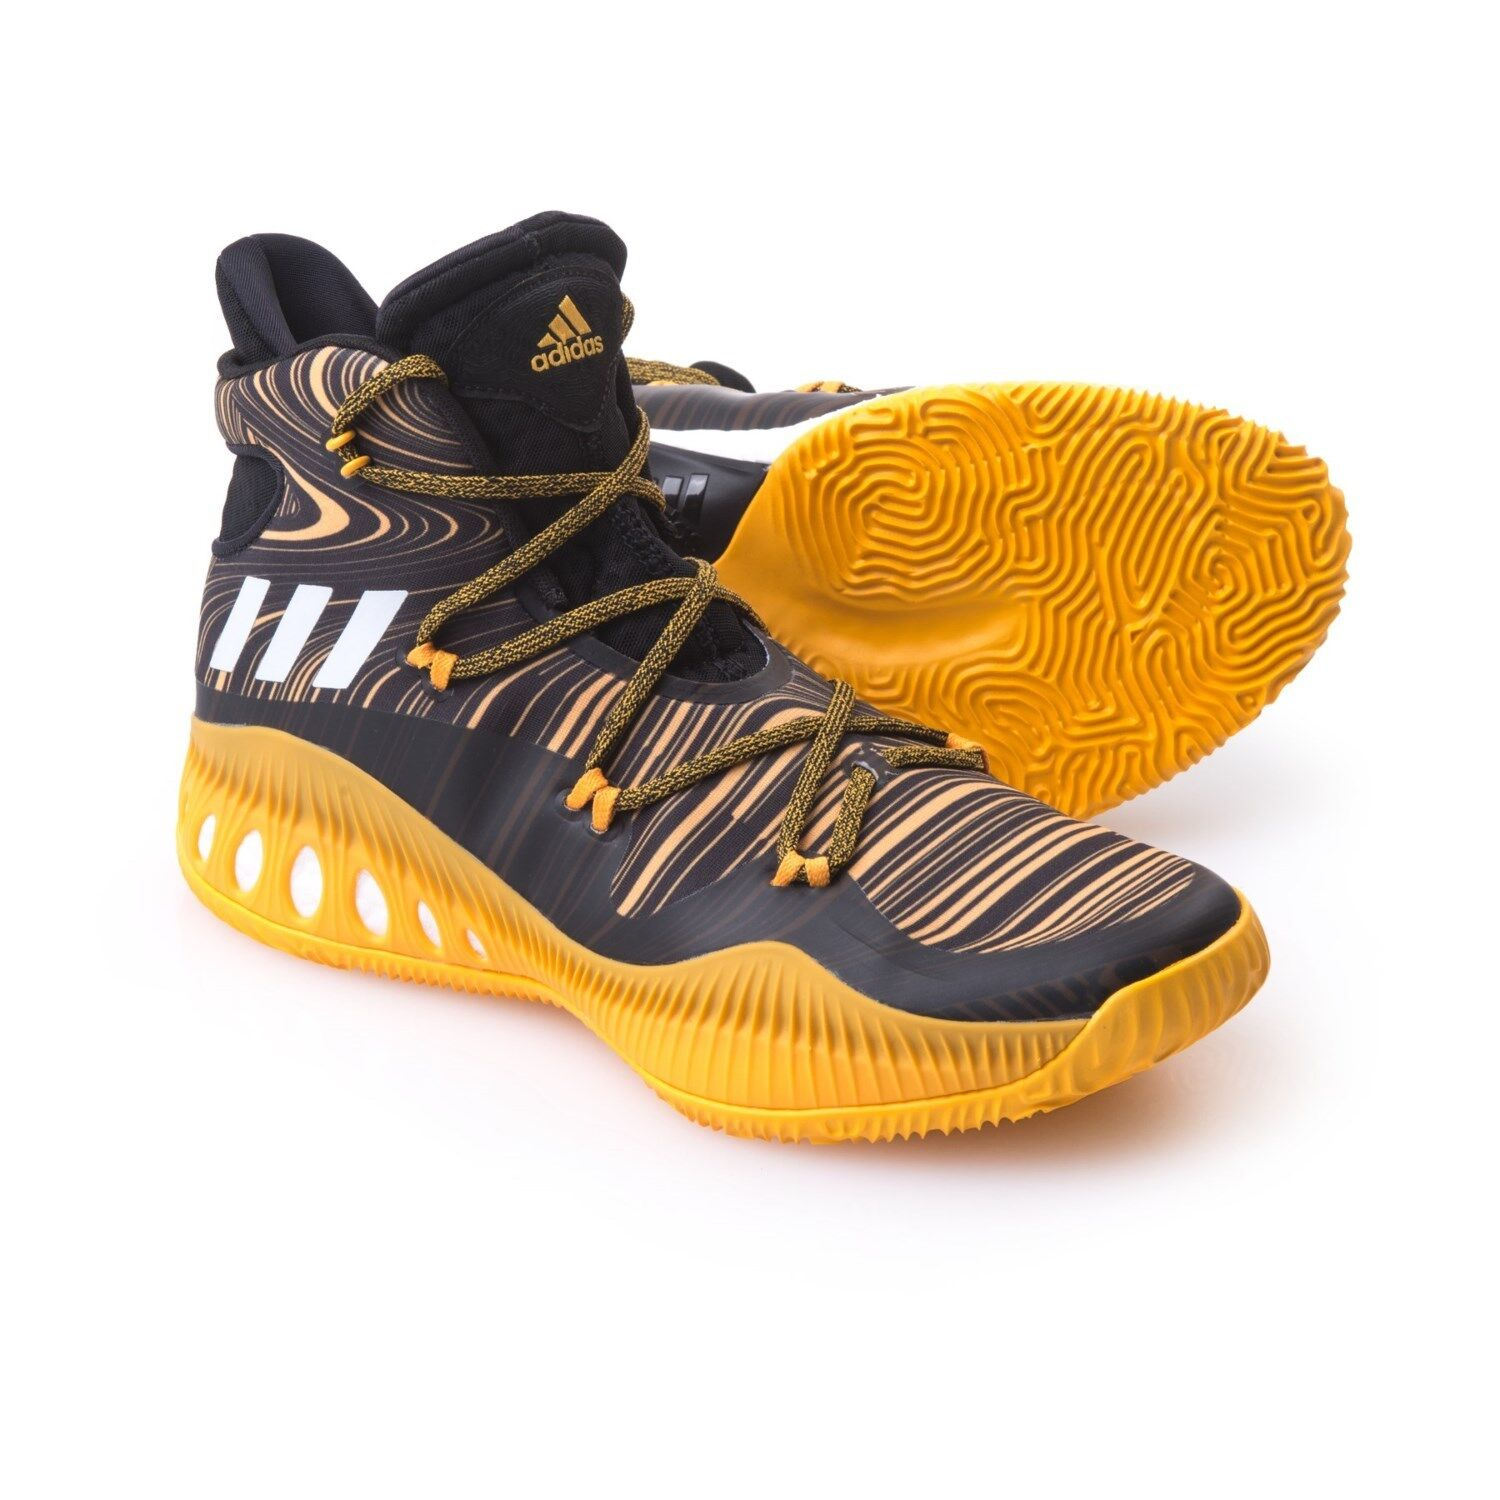 Adidas Geofit SM Crazy Explosive Basketball Shoes US 19 Med D New In Retail Box